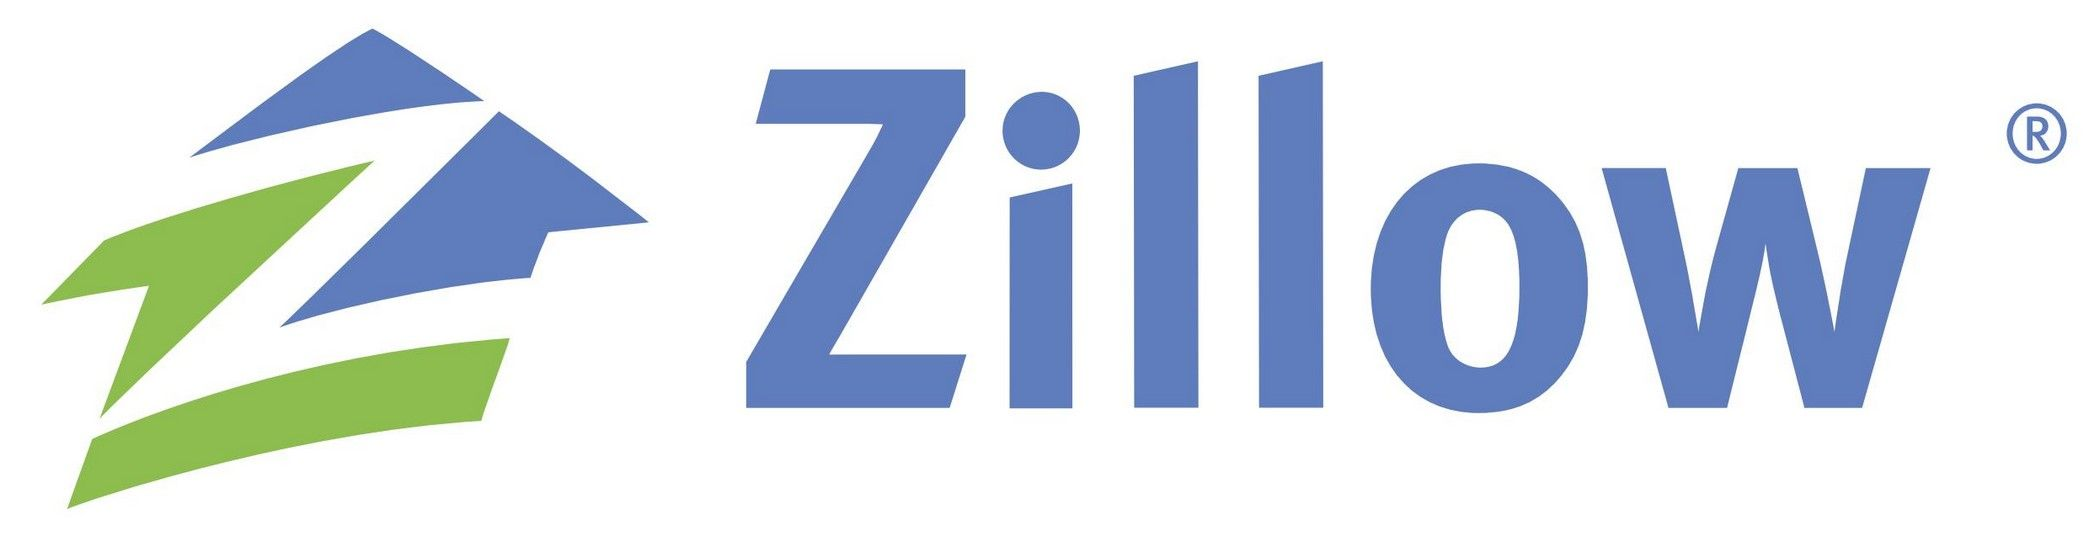 Trulia Logo - Zillow Announces Acquisition of Trulia » Lyn Trayte